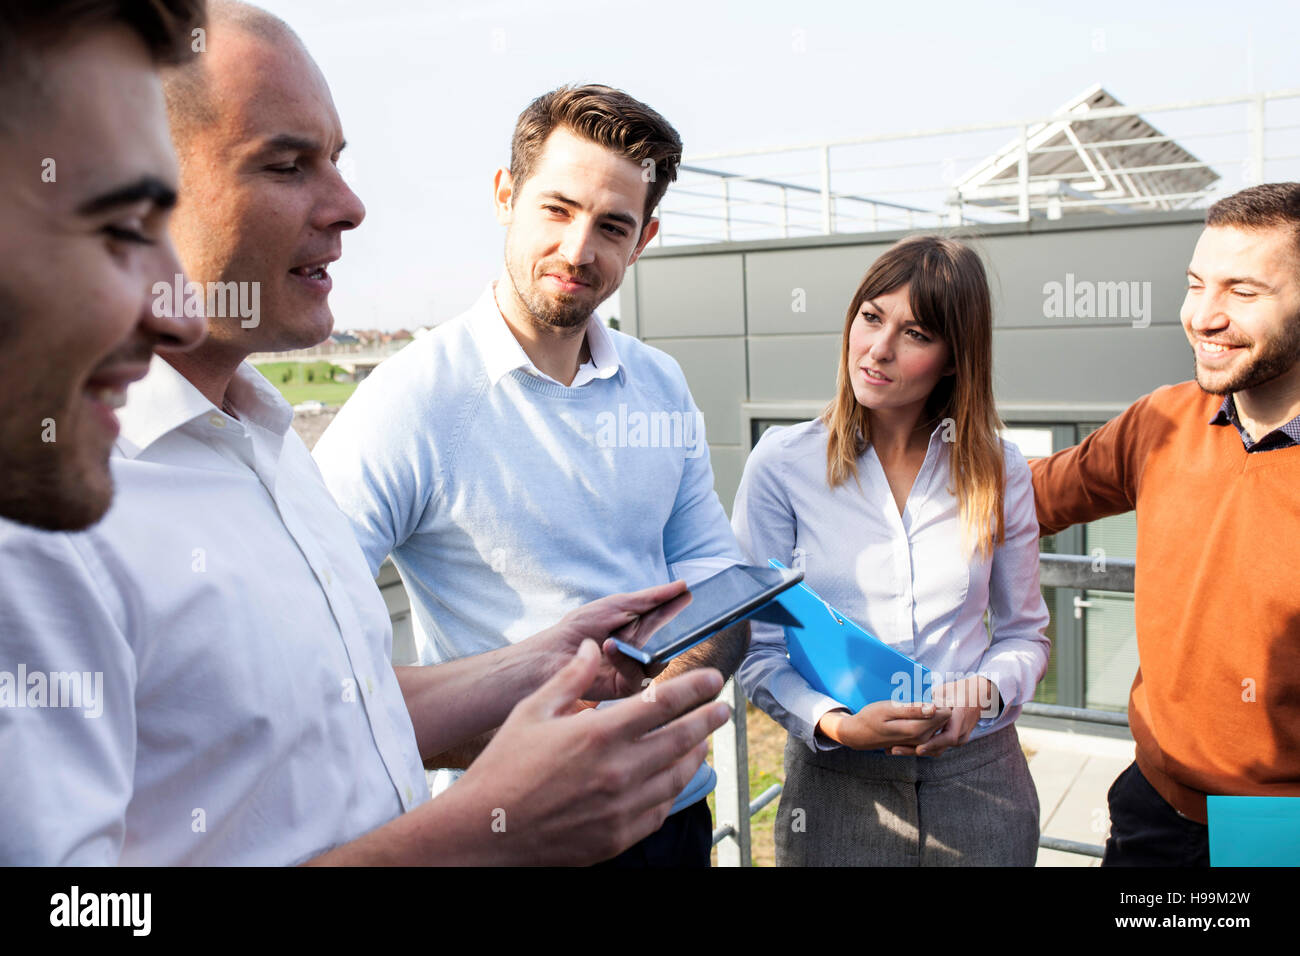 Group of business people talking outdoors - Stock Image